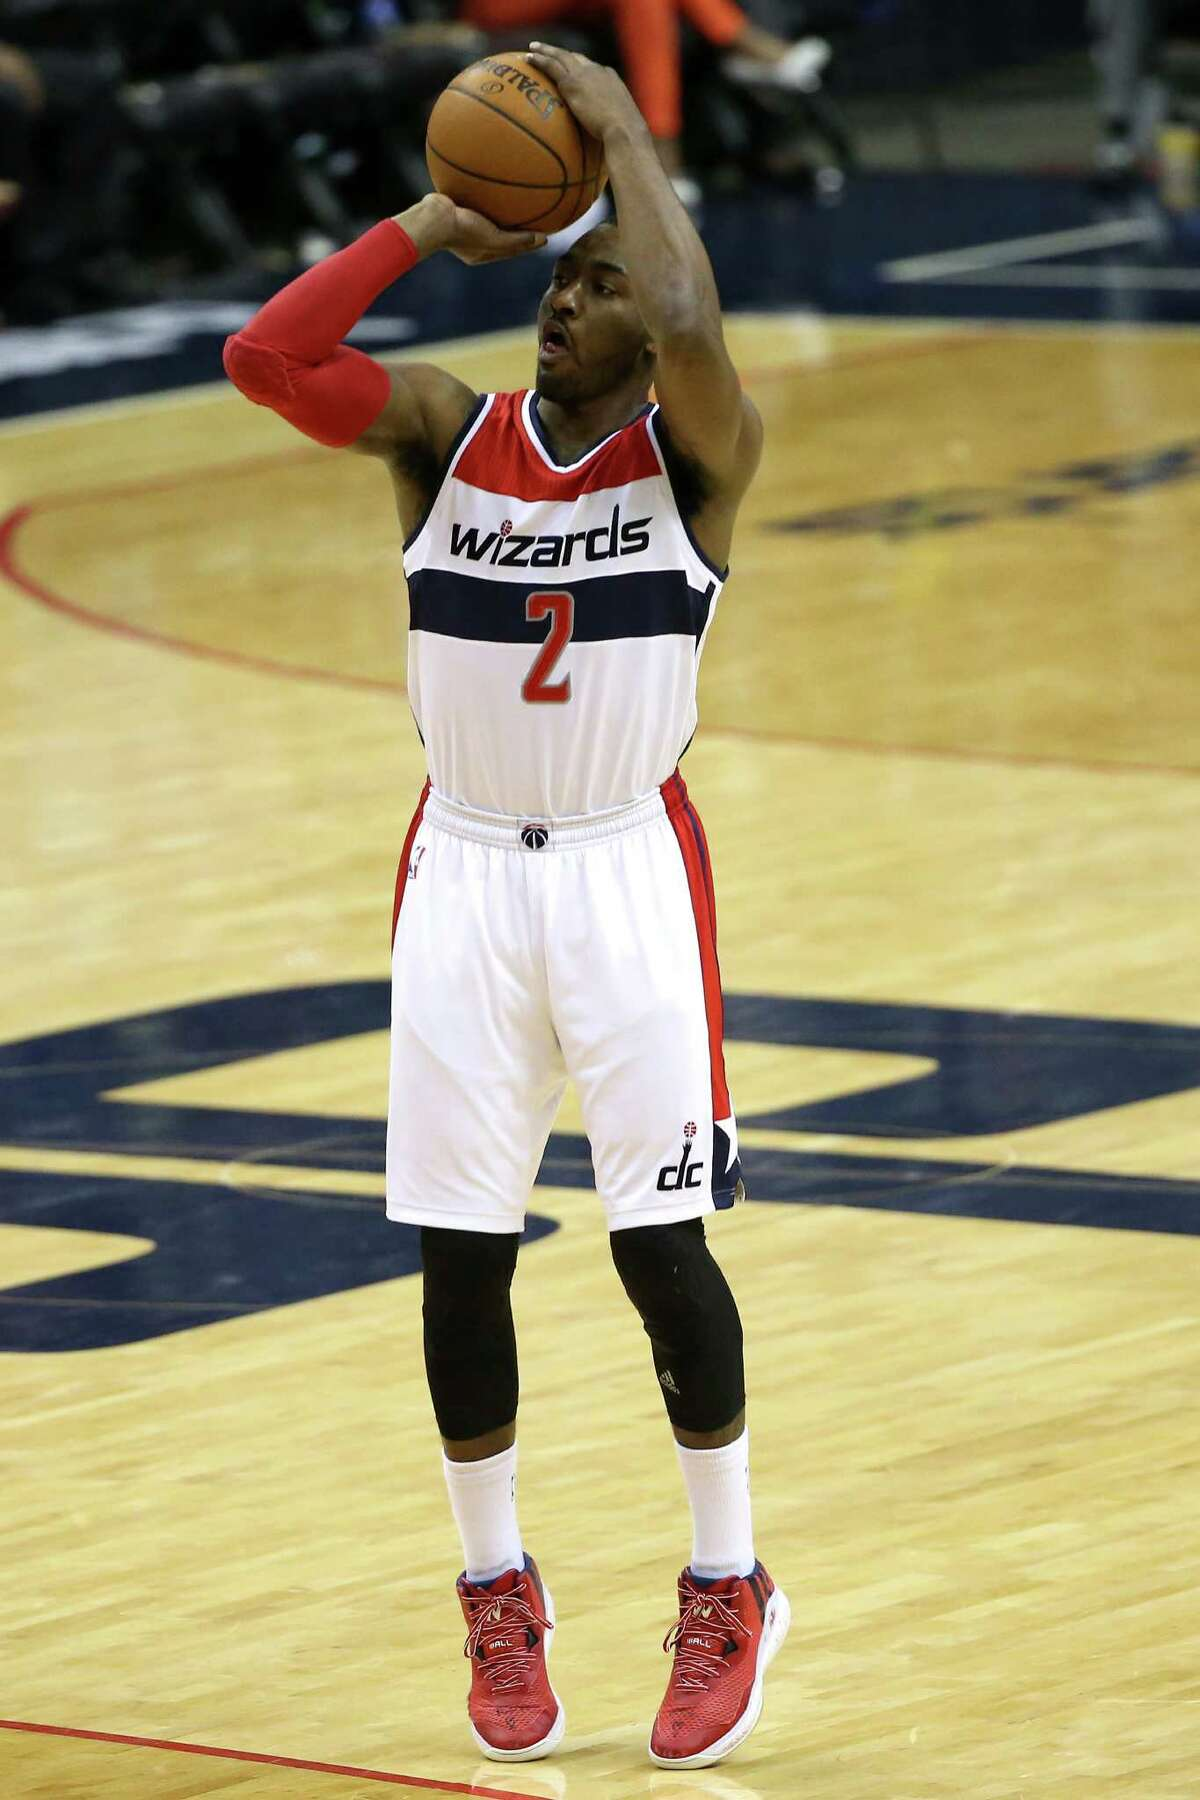 WASHINGTON, DC - MARCH 12: John Wall #2 of the Washington Wizards shoots in the third quarter against the Memphis Grizzlies at Verizon Center on March 12, 2015 in Washington, DC. NOTE TO USER: User expressly acknowledges and agrees that, by downloading and or using this photograph, User is consenting to the terms and conditions of the Getty Images License Agreement. (Photo by Patrick Smith/Getty Images) ORG XMIT: 508087295